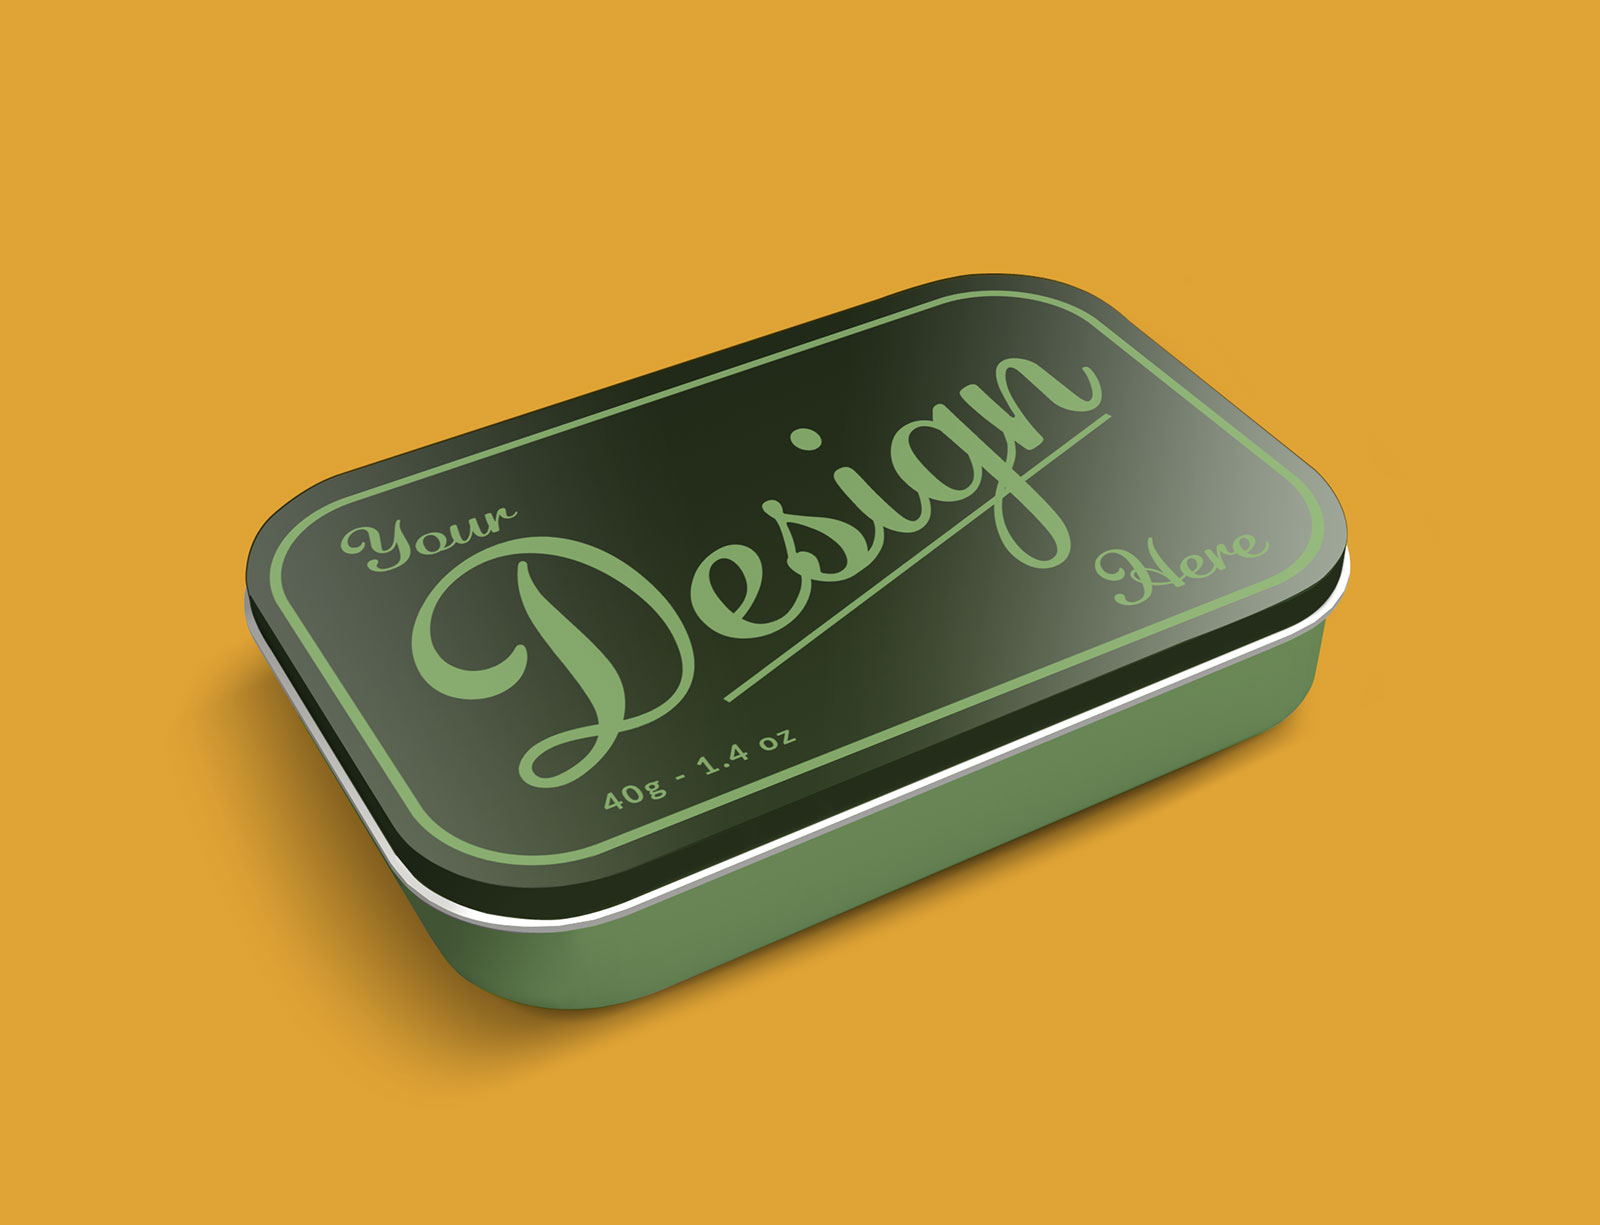 Free-Tin-Box-Packaging-Mockup-PSD-File-4